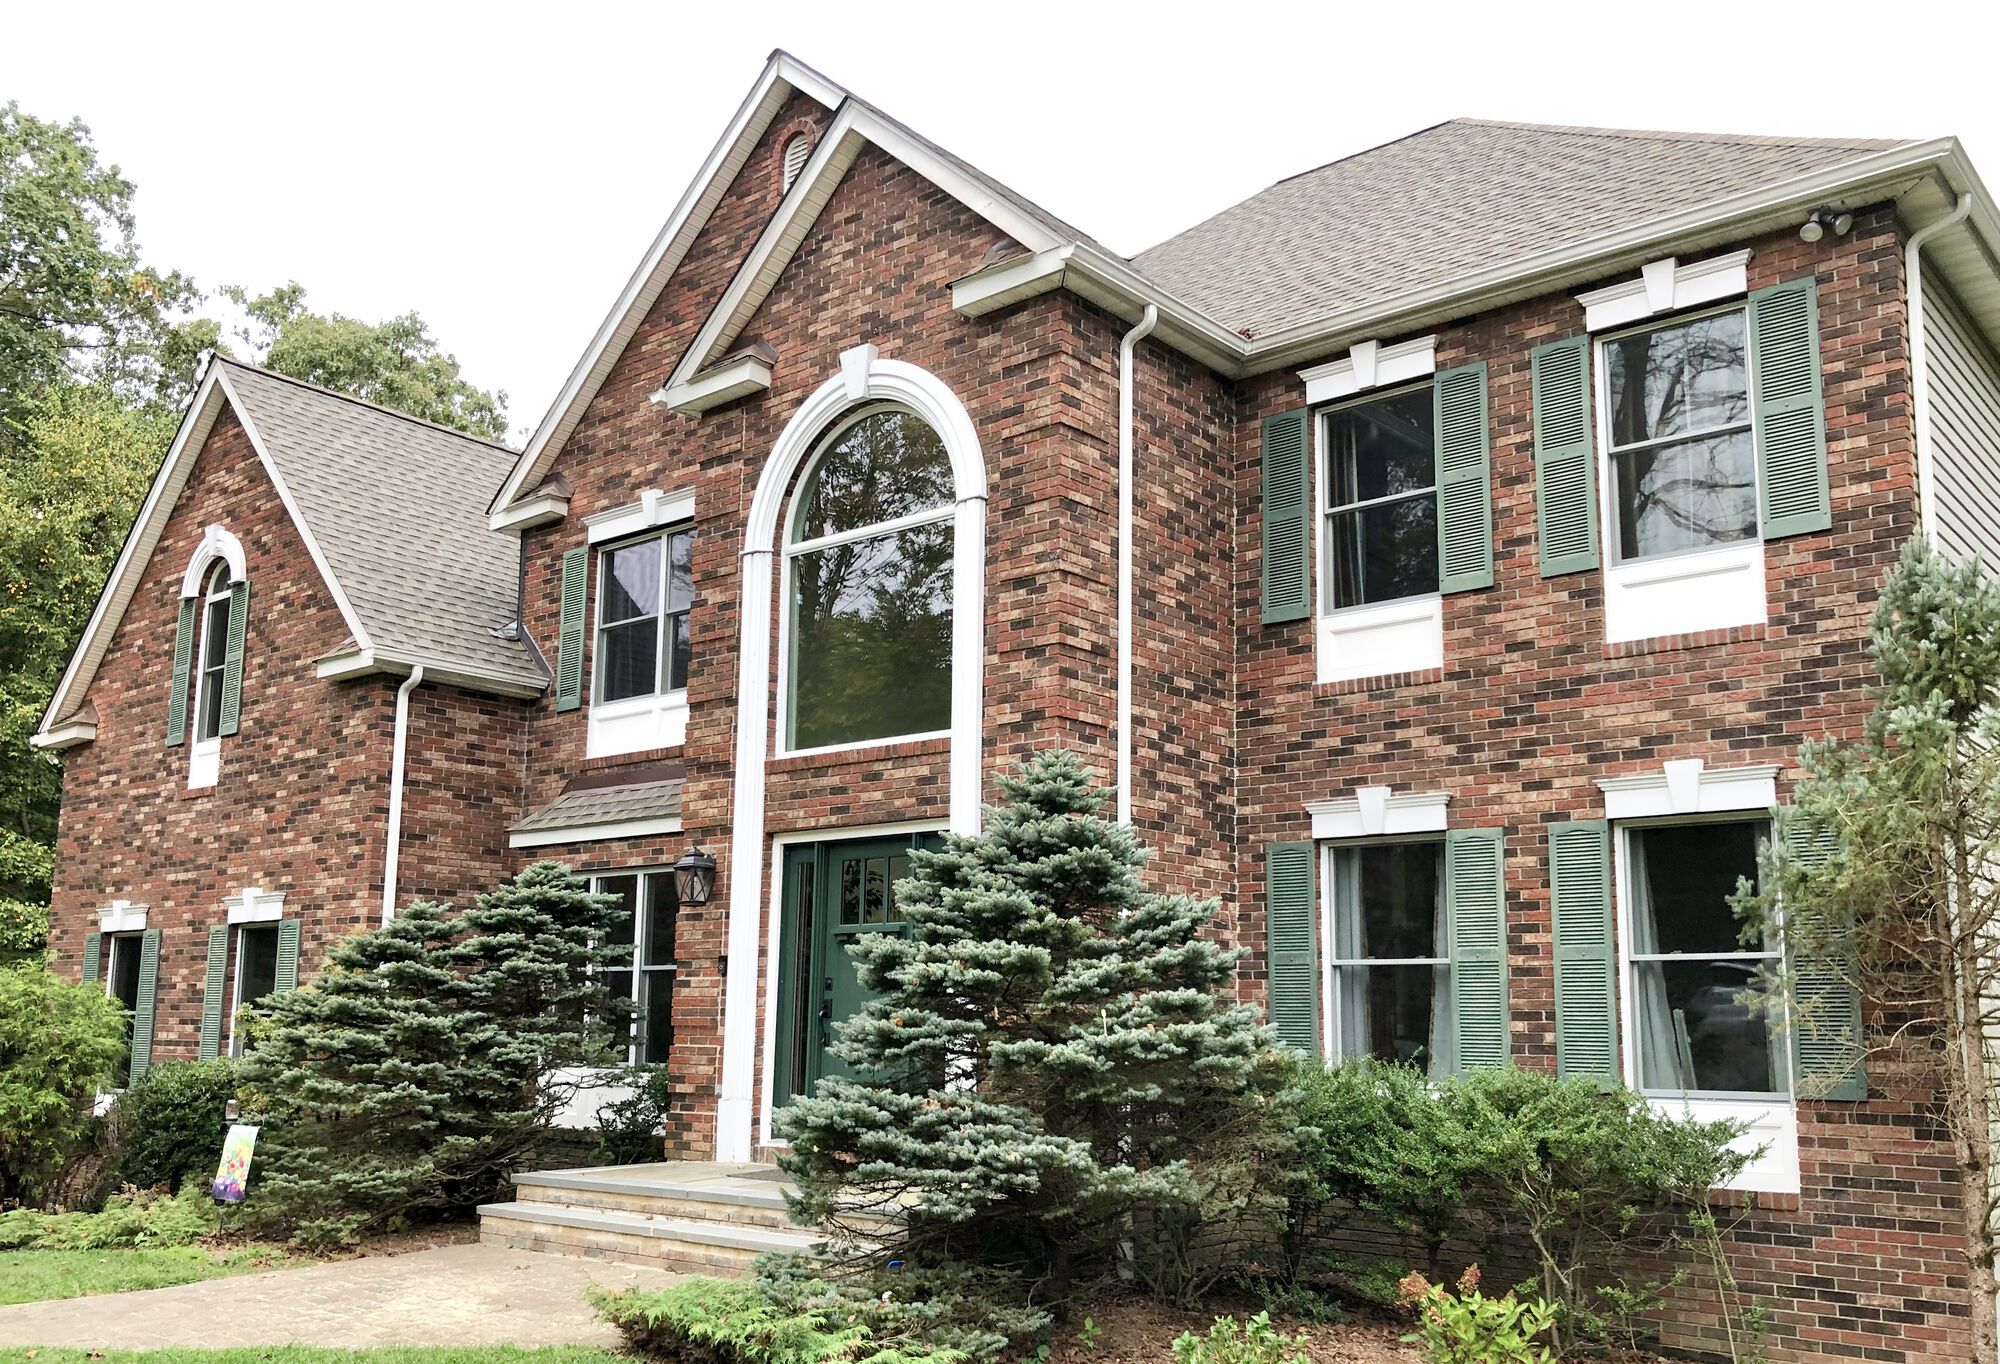 Pella Windows and Doors Installed in Sparta, Sussex County NJ